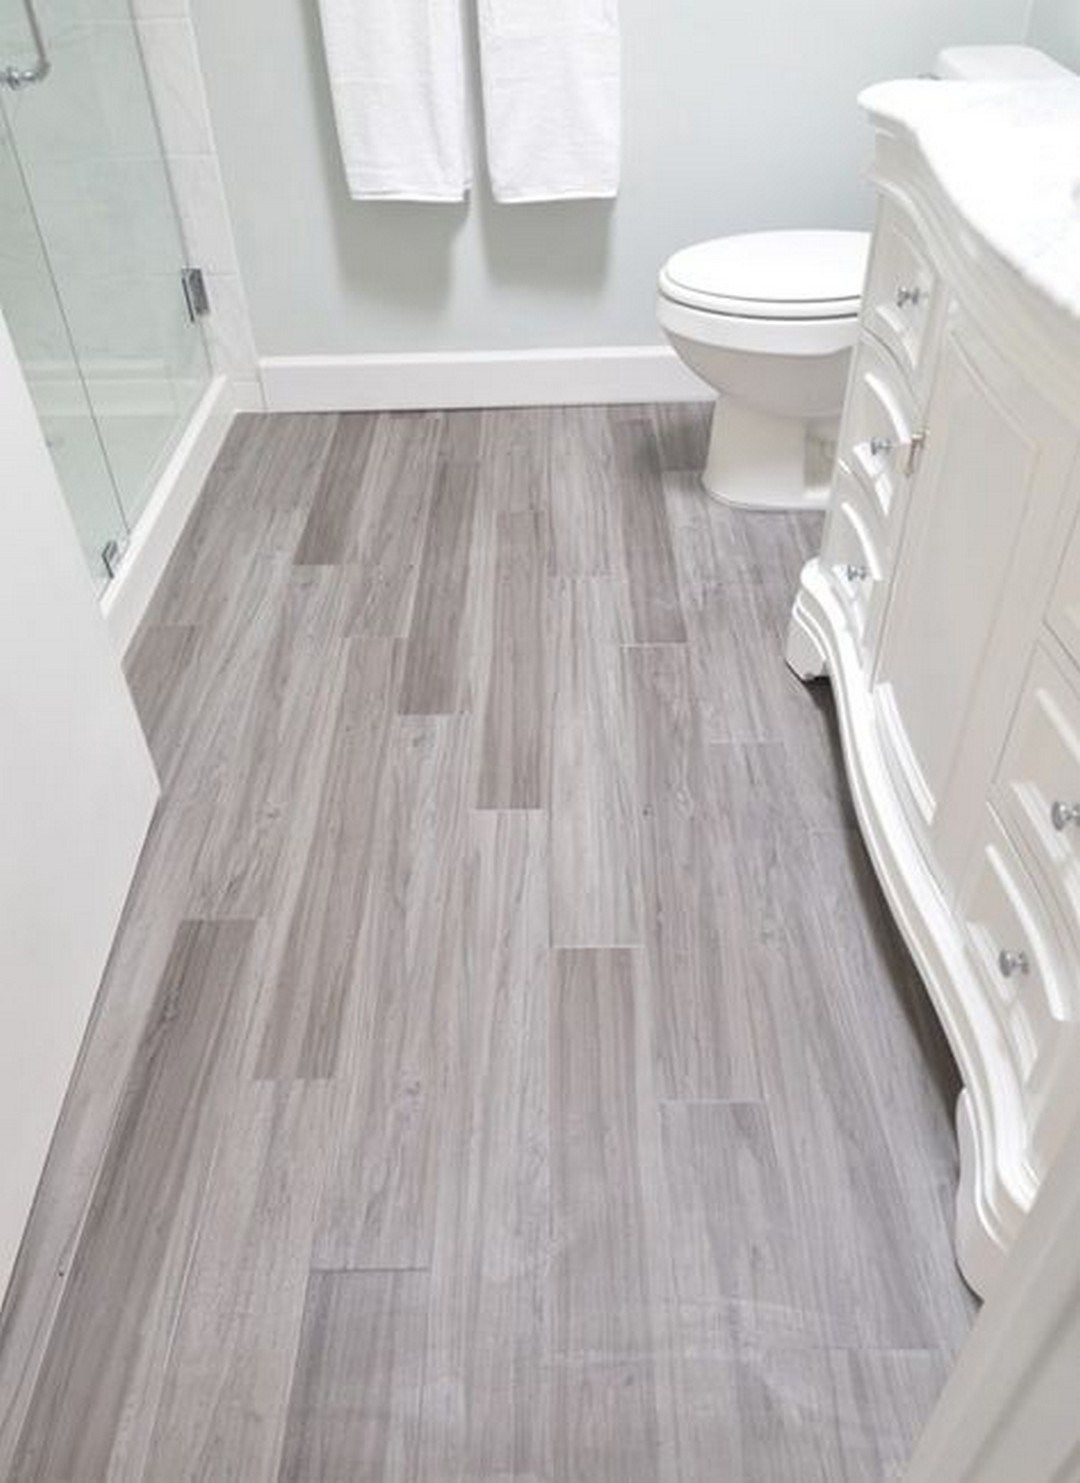 LOVE the Wood look Tile  Urban Farmhouse Master Bathroom Remodel  66     LOVE the Wood look Tile  Urban Farmhouse Master Bathroom Remodel  66